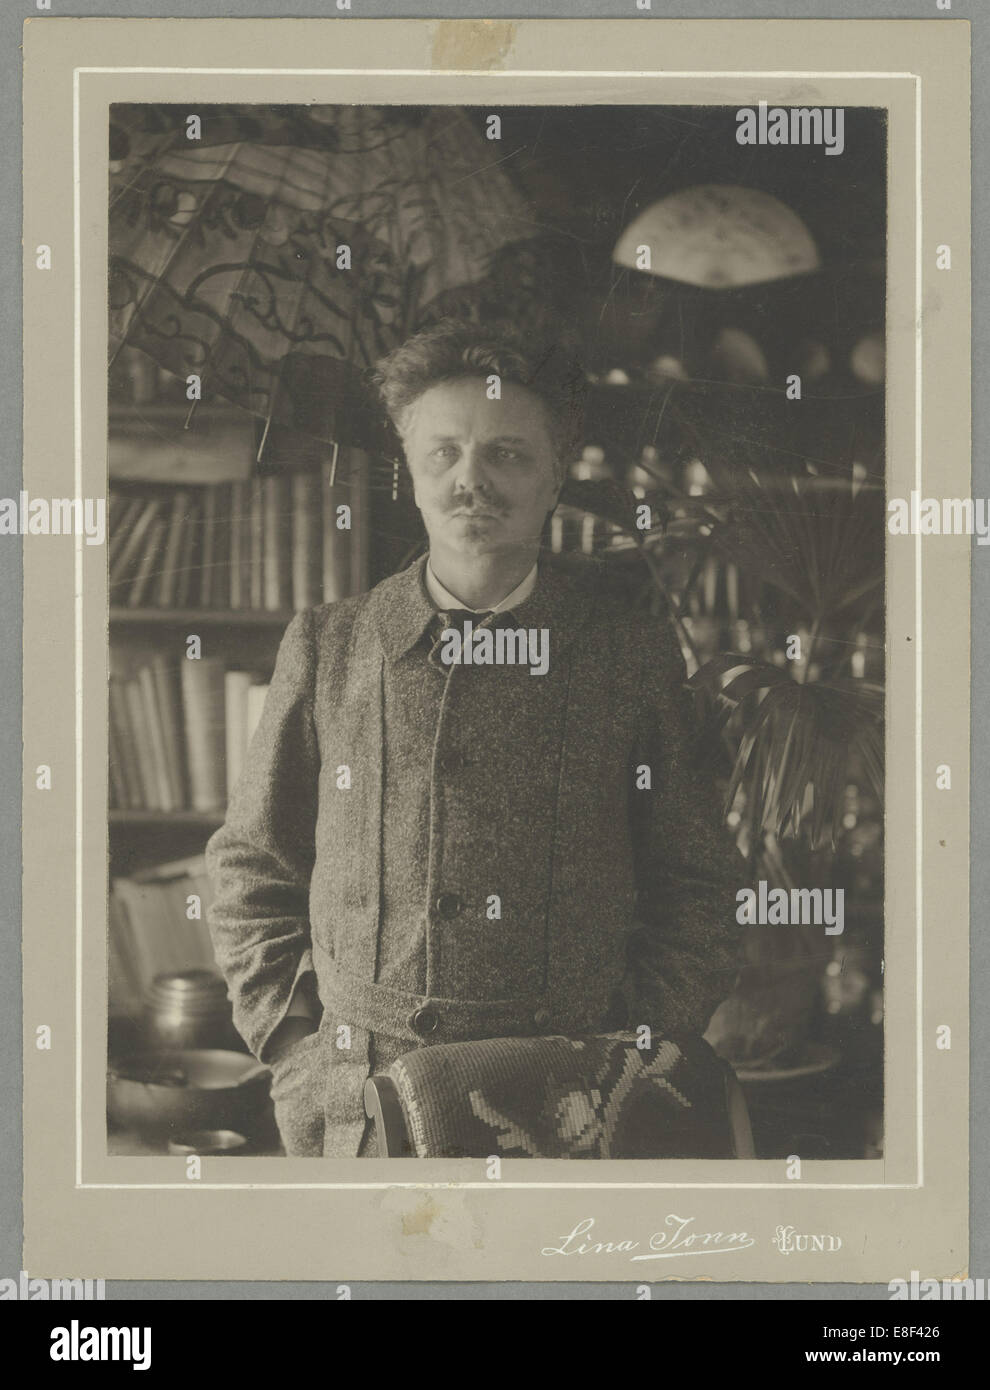 August Strindberg Artist: Jonn, Lina (1861-1896) - Stock Image